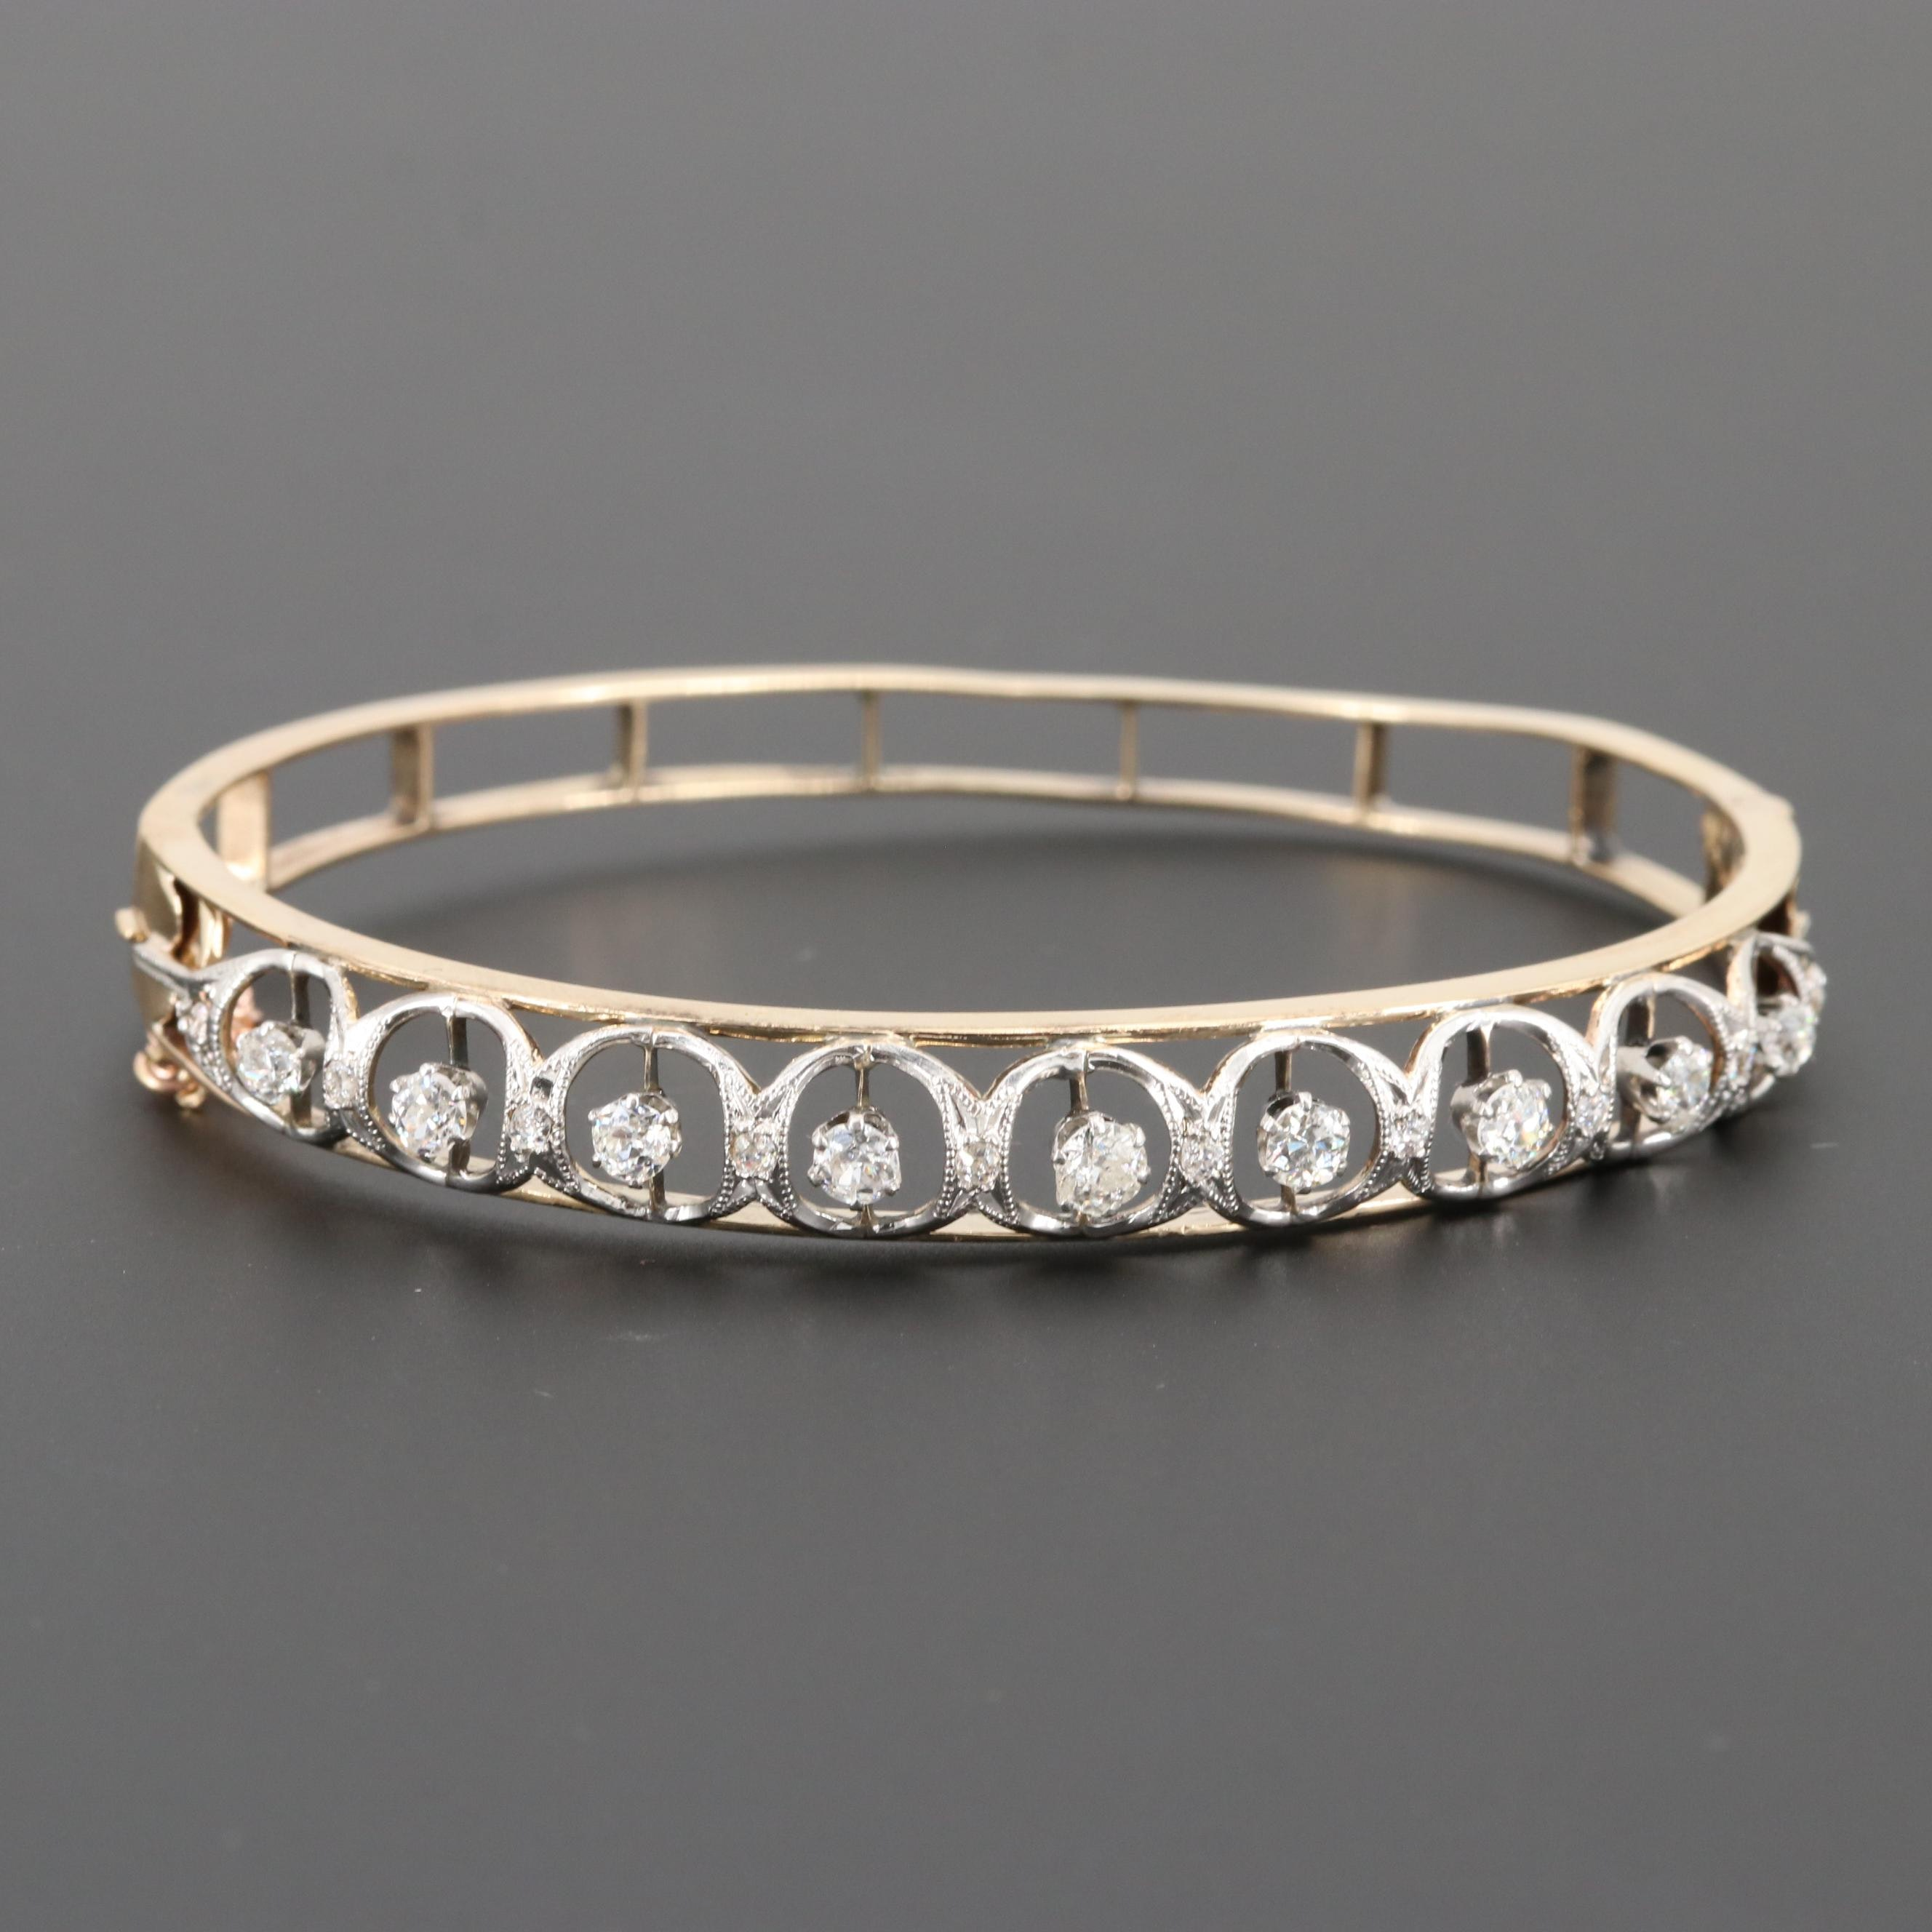 Antique 14K Yellow Gold and Platinum 1.66 CTW Diamond Hinged Bangle Bracelet